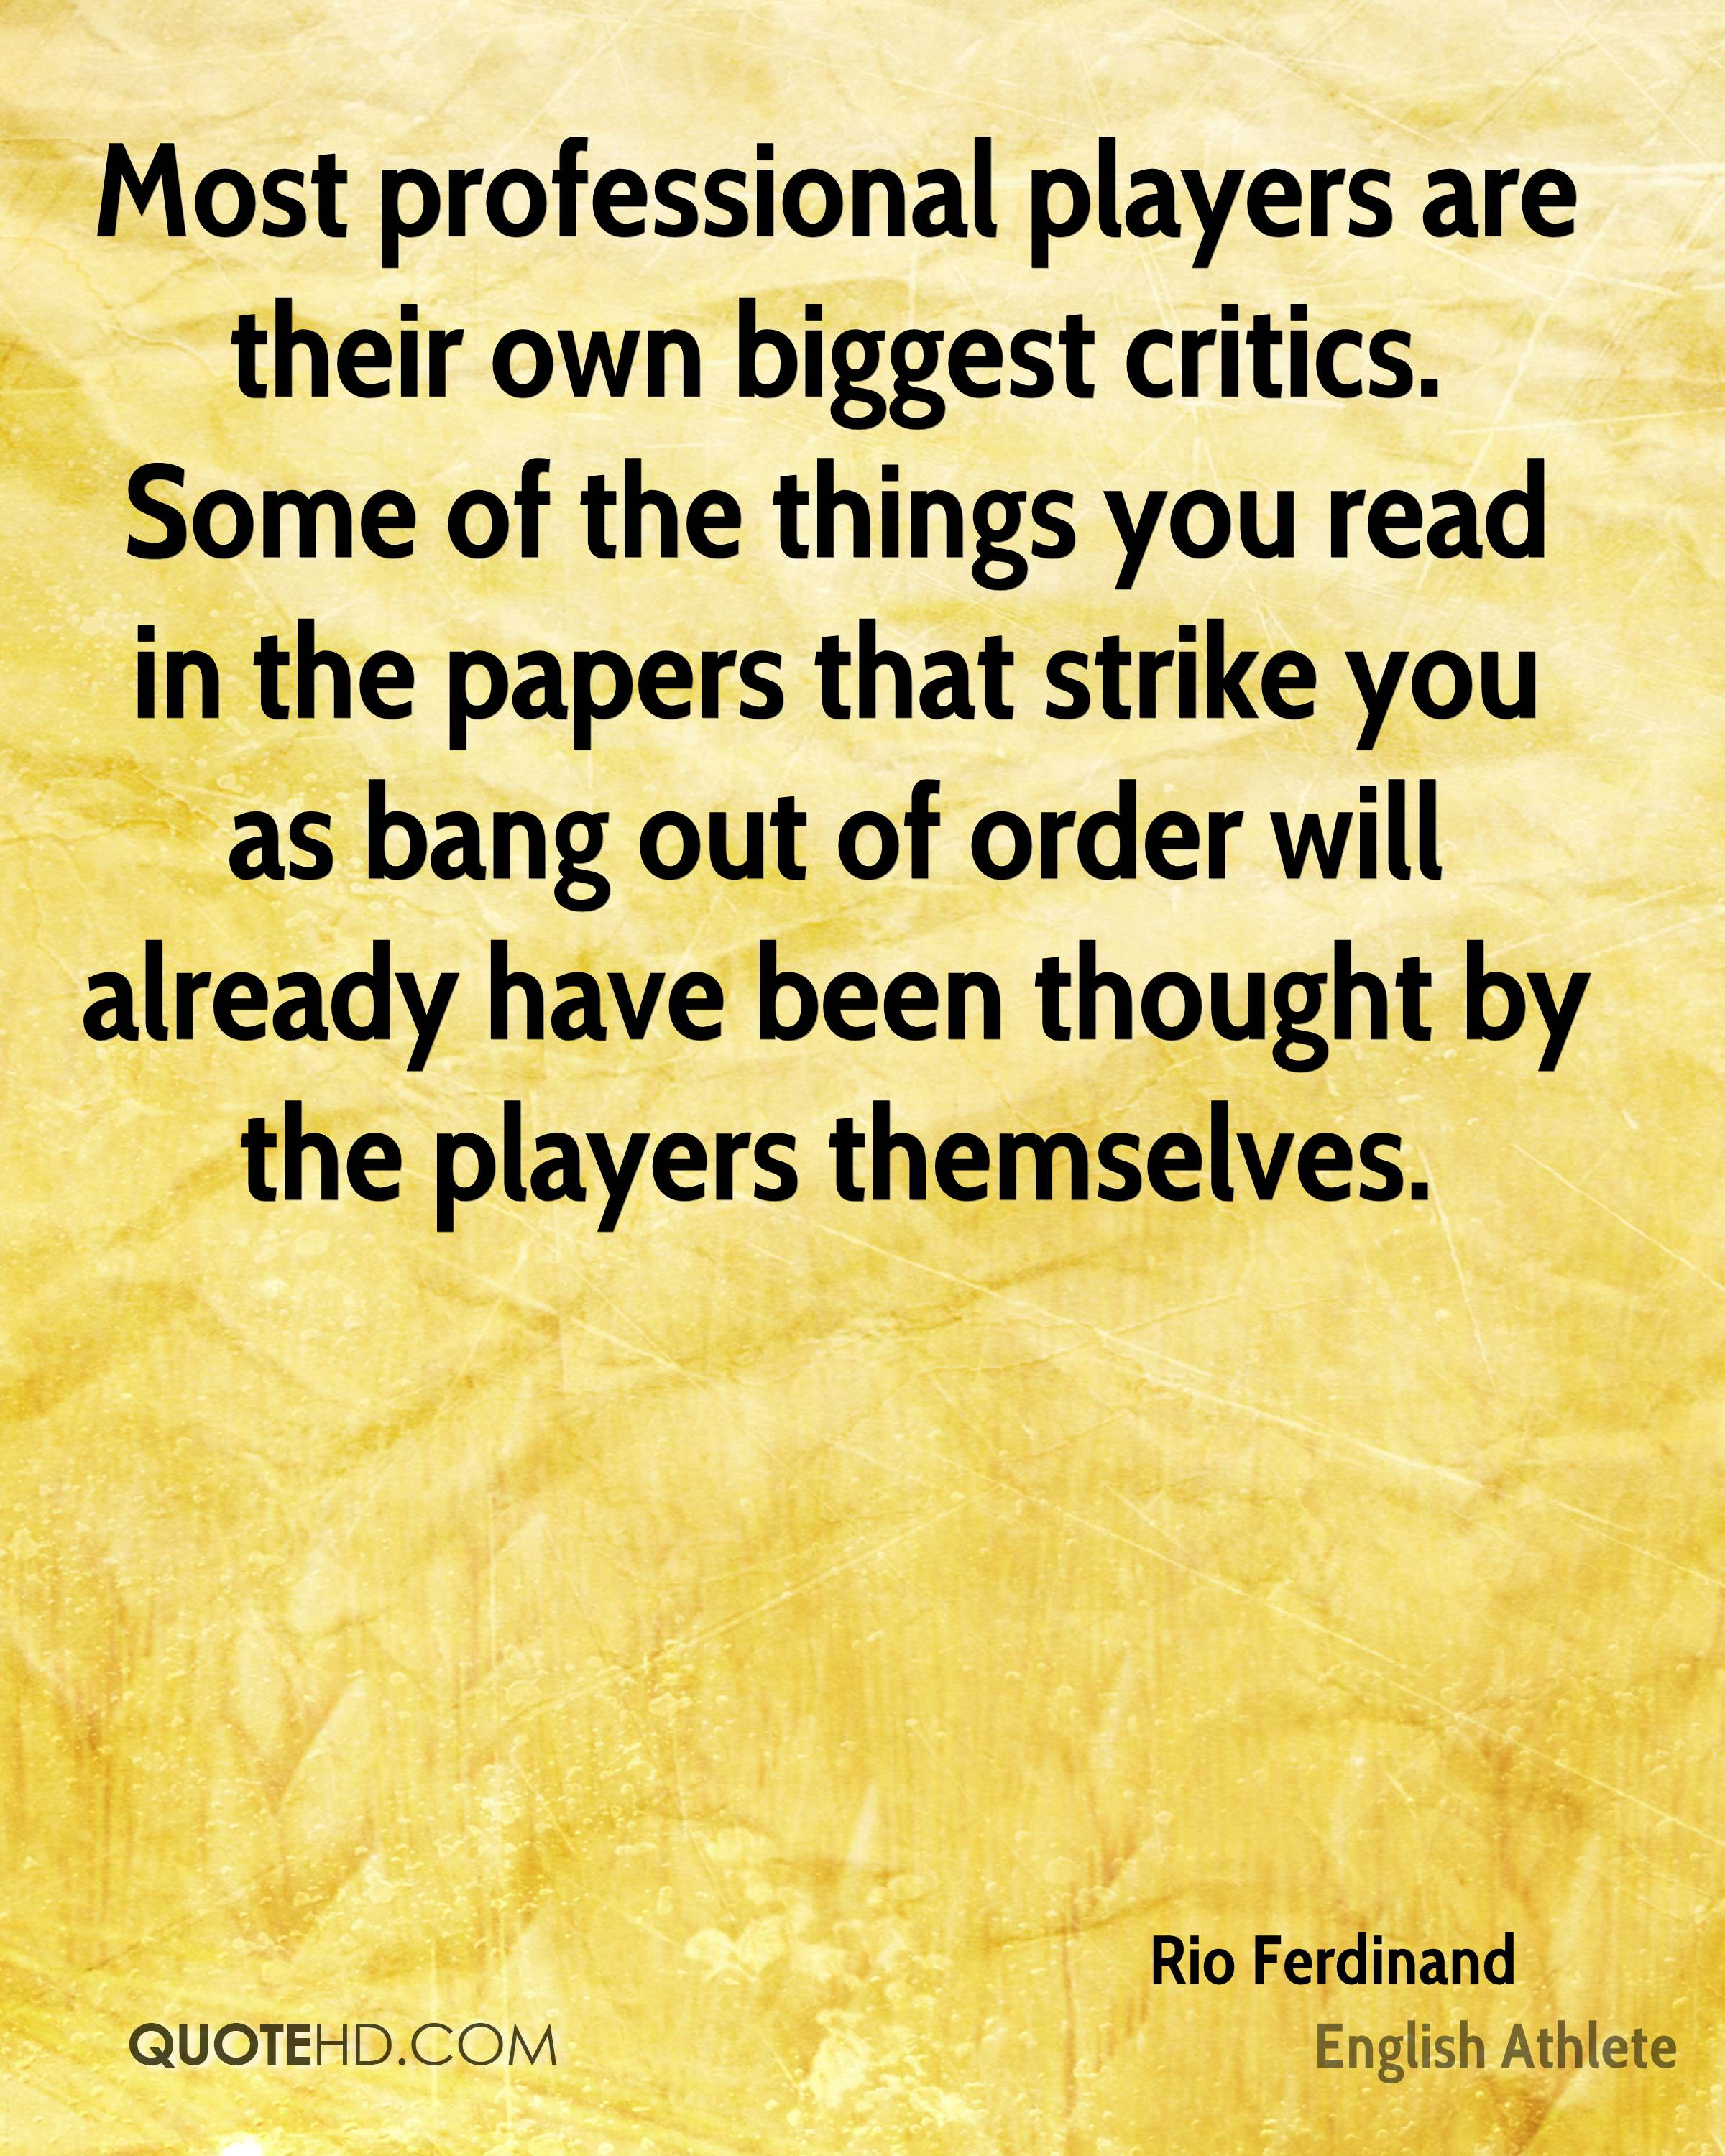 Most professional players are their own biggest critics. Some of the things you read in the papers that strike you as bang out of order will already have been thought by the players themselves.